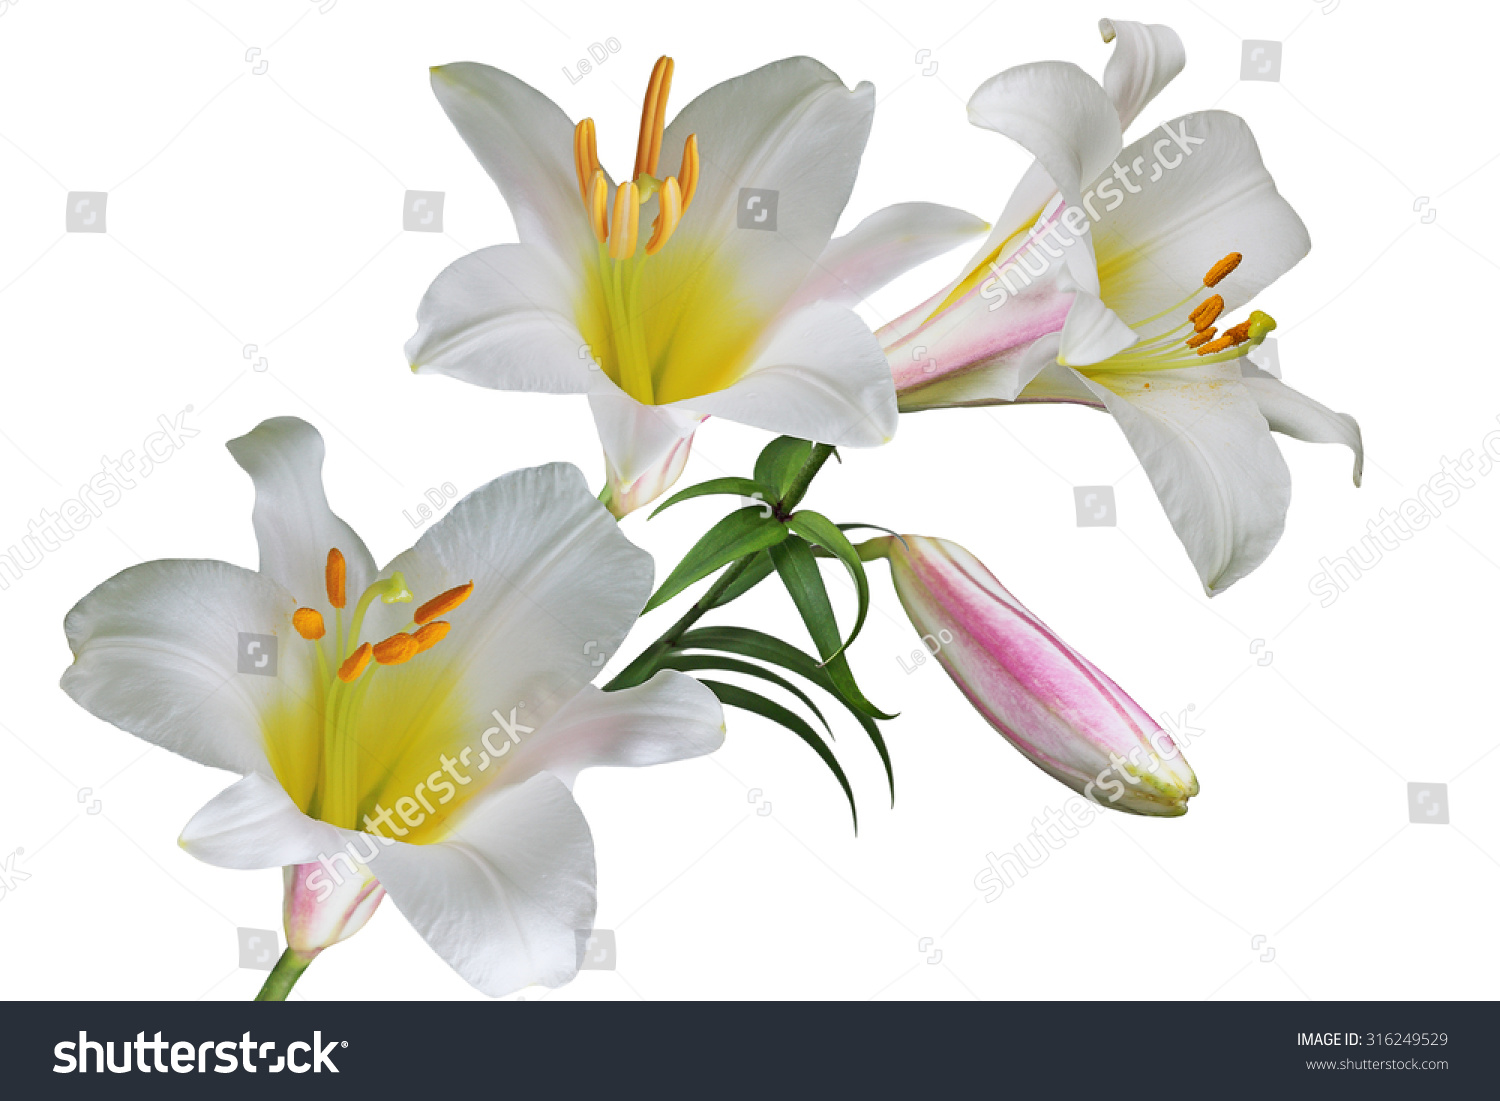 Multi color lily flower bouquet isolated stock photo 100 legal multi color lily flower bouquet isolated on white background izmirmasajfo